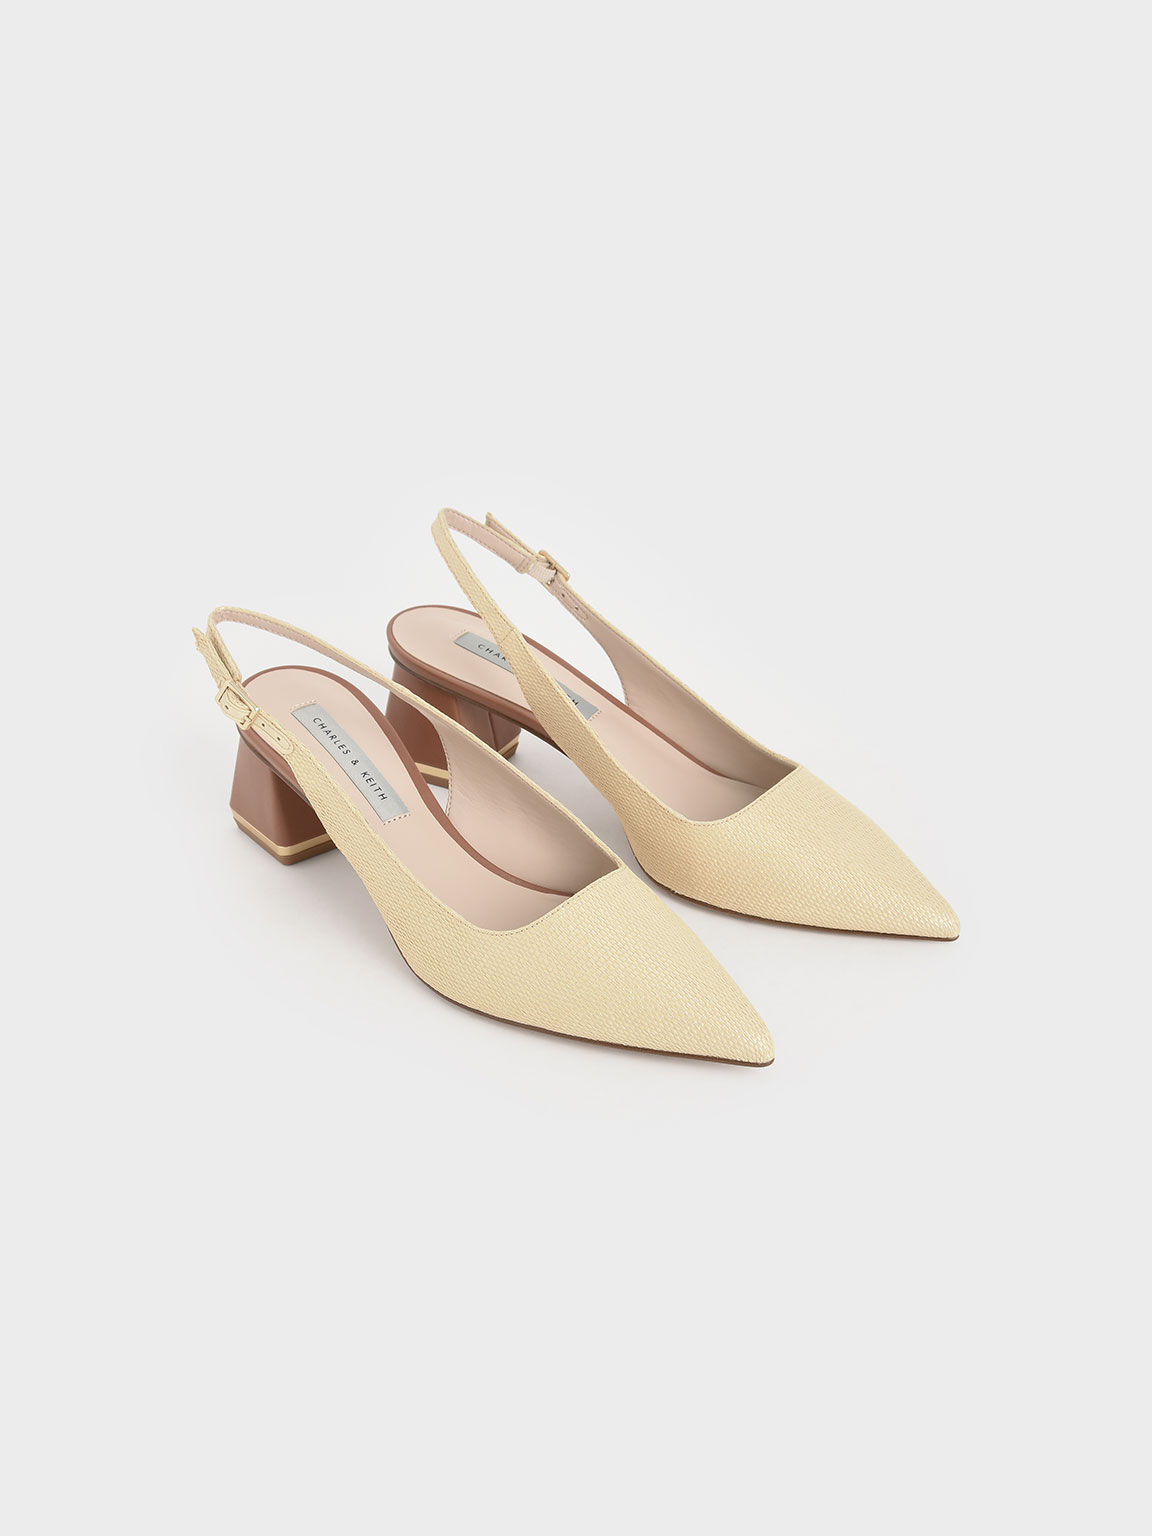 Raffia Metallic Accent Slingback Court Shoes, Sand, hi-res